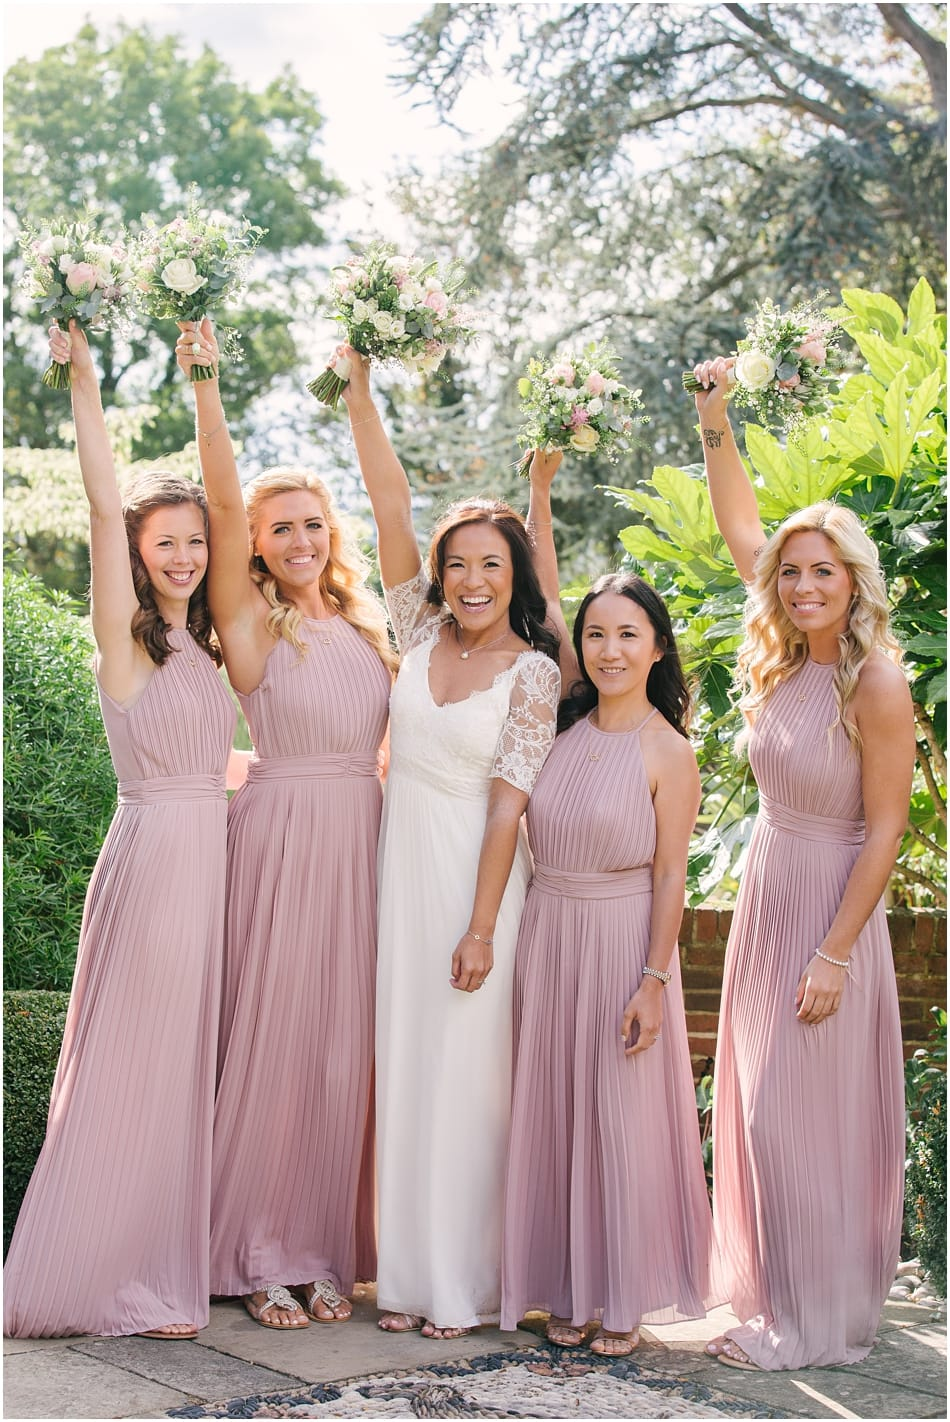 Bride and Bridesmaids wearing pink dresses with bouquets in the air at Gorcott Hall